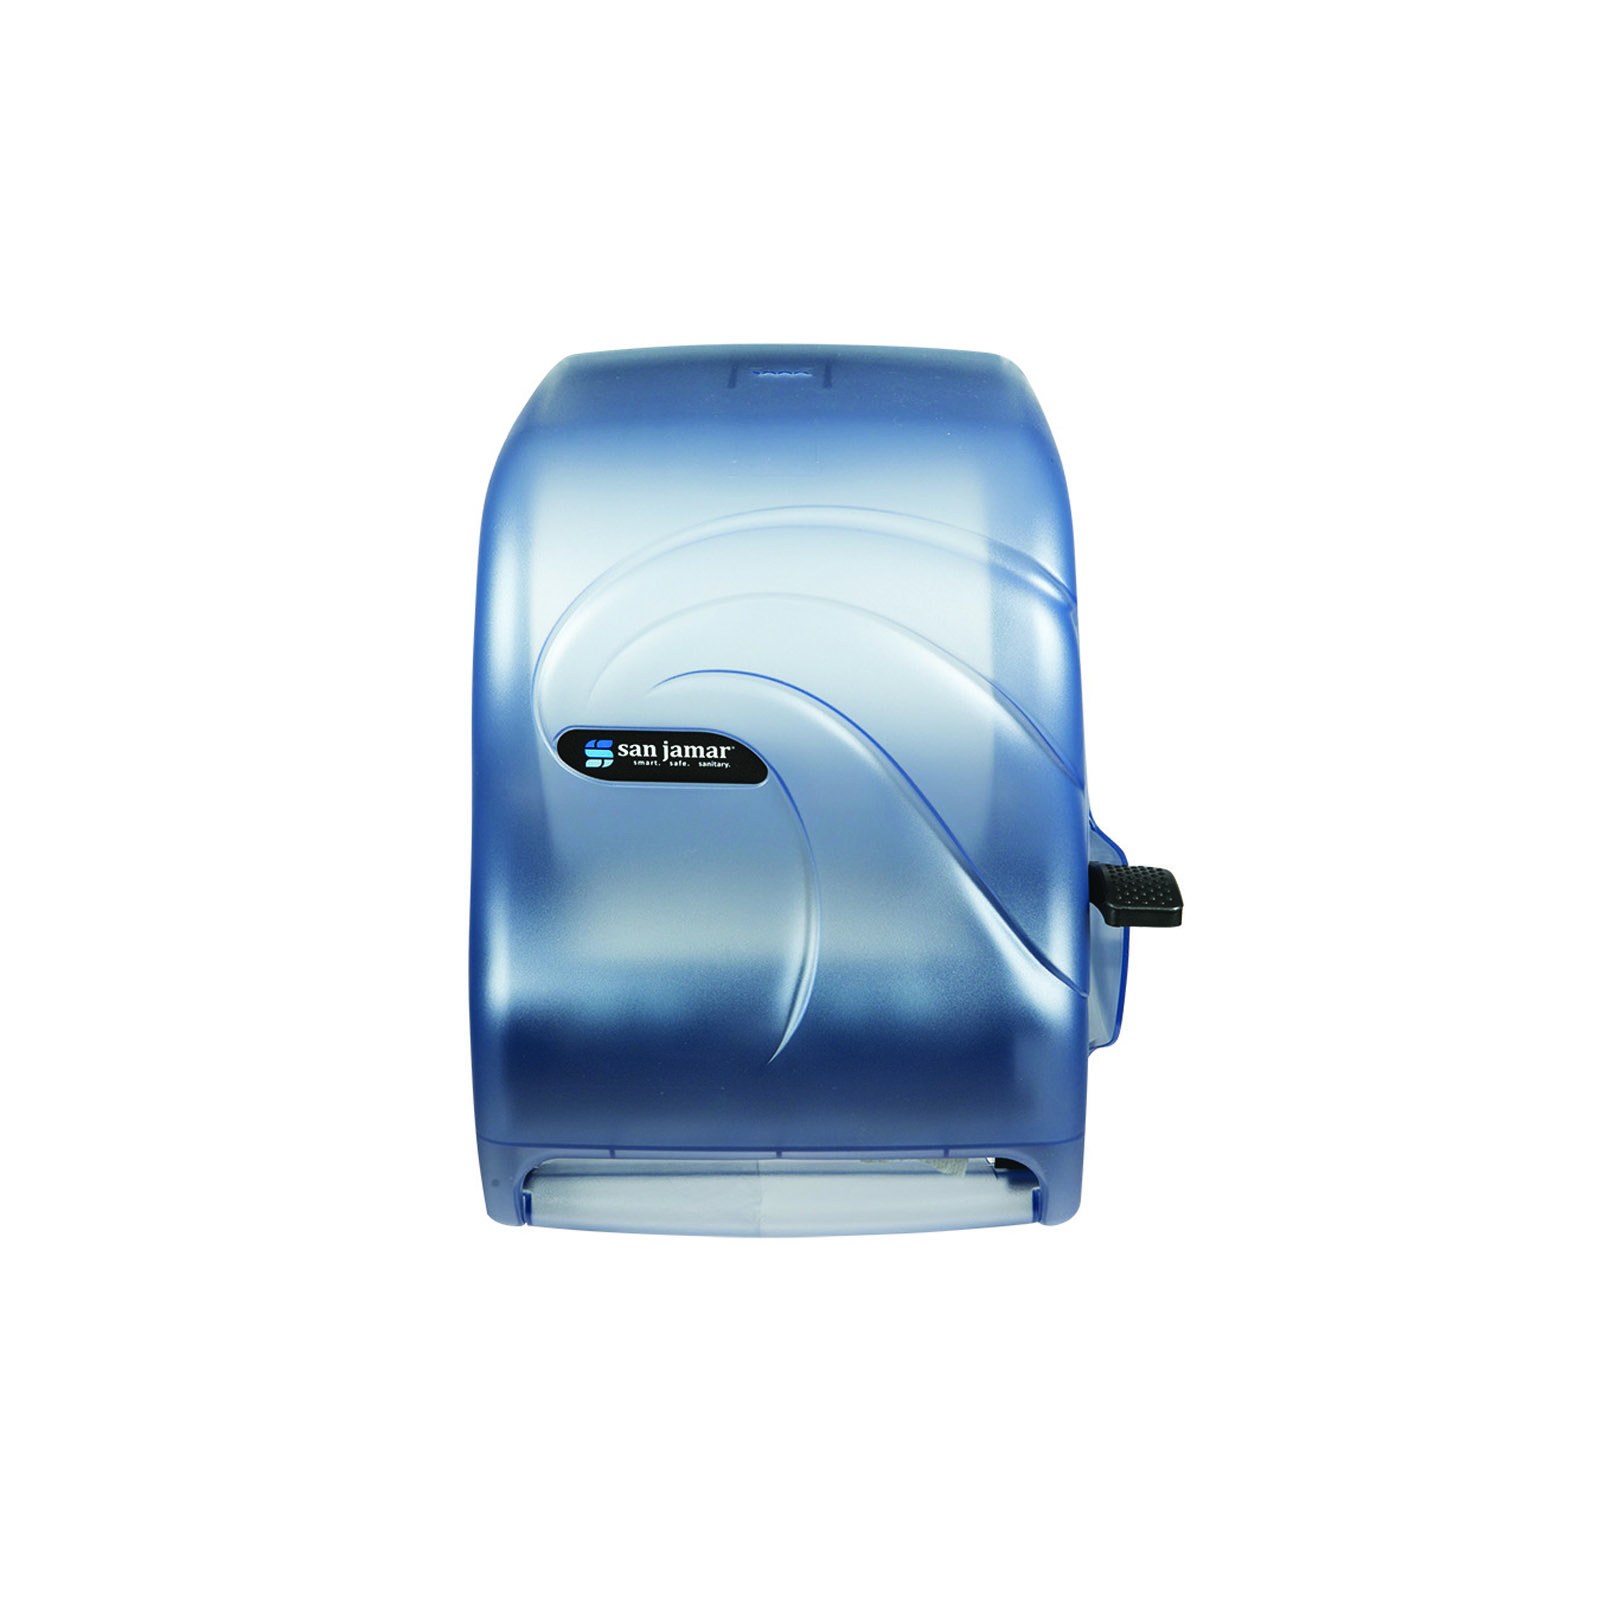 San Jamar T1190TBL paper towel dispenser